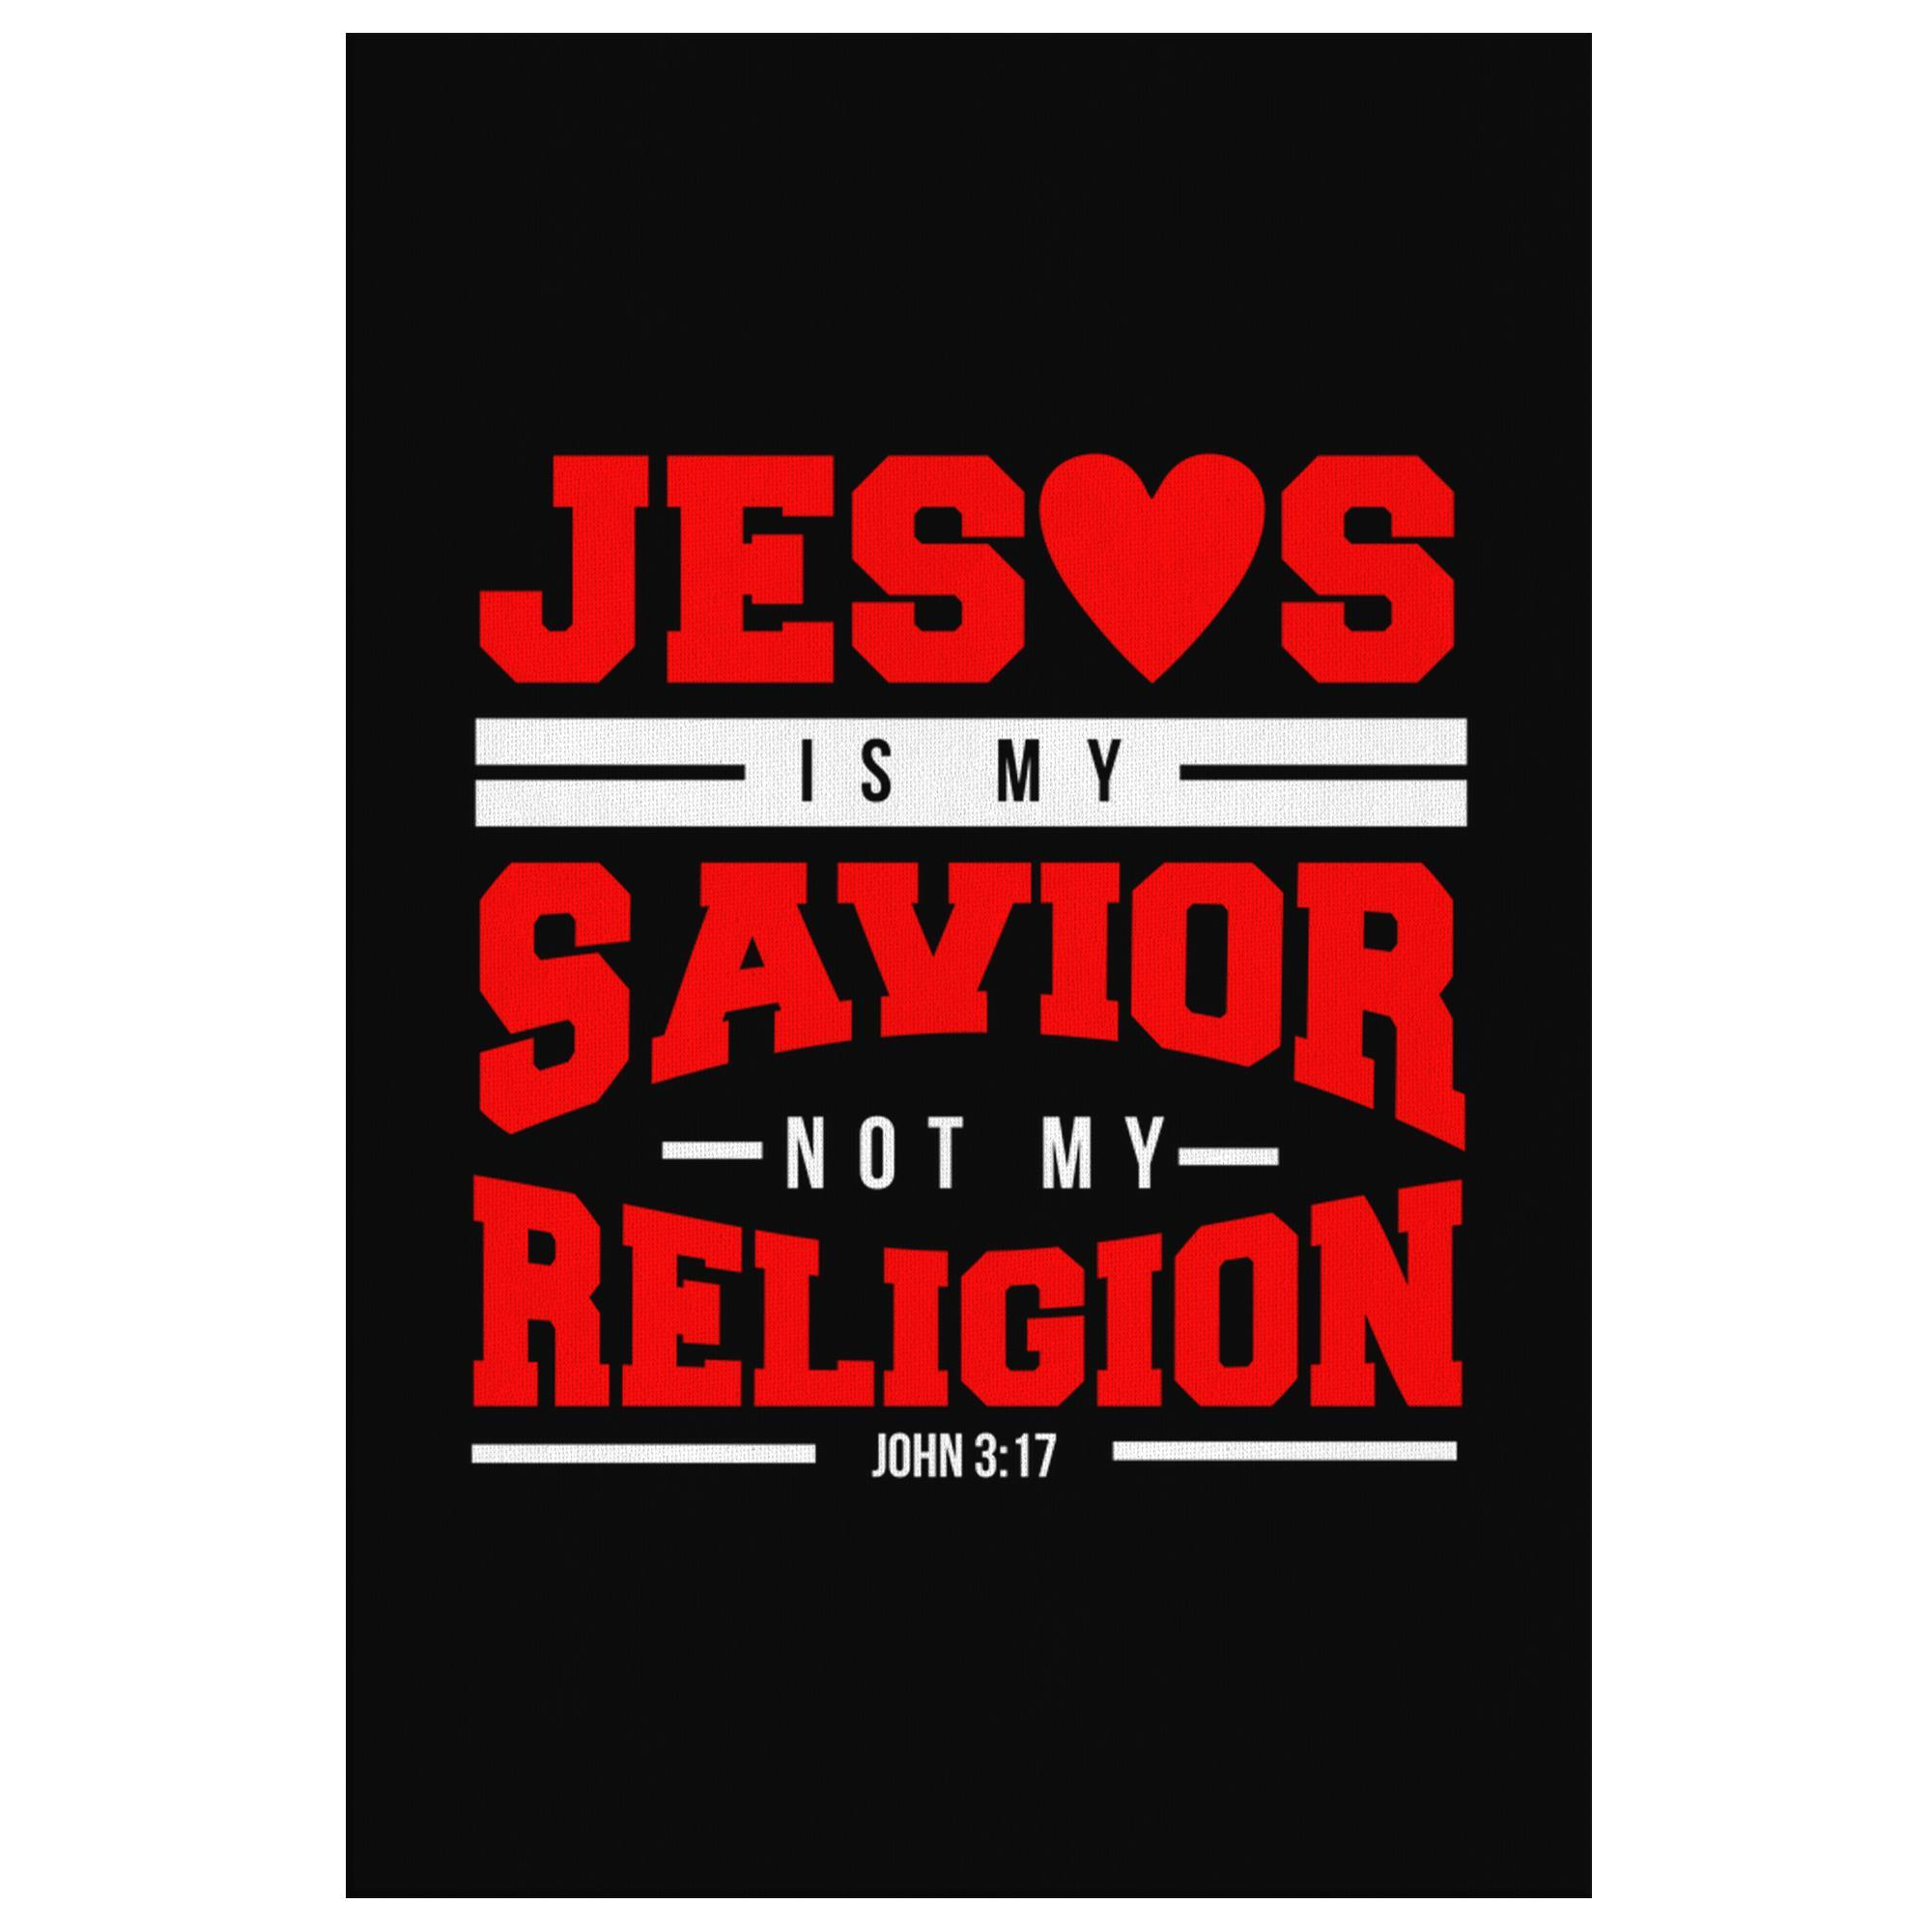 Jesus Is My Savior Not My Religion John3:17 Christian Canvas Wall Art Room Decor-Canvas Wall Art 2-8 x 12-JoyHip.Com